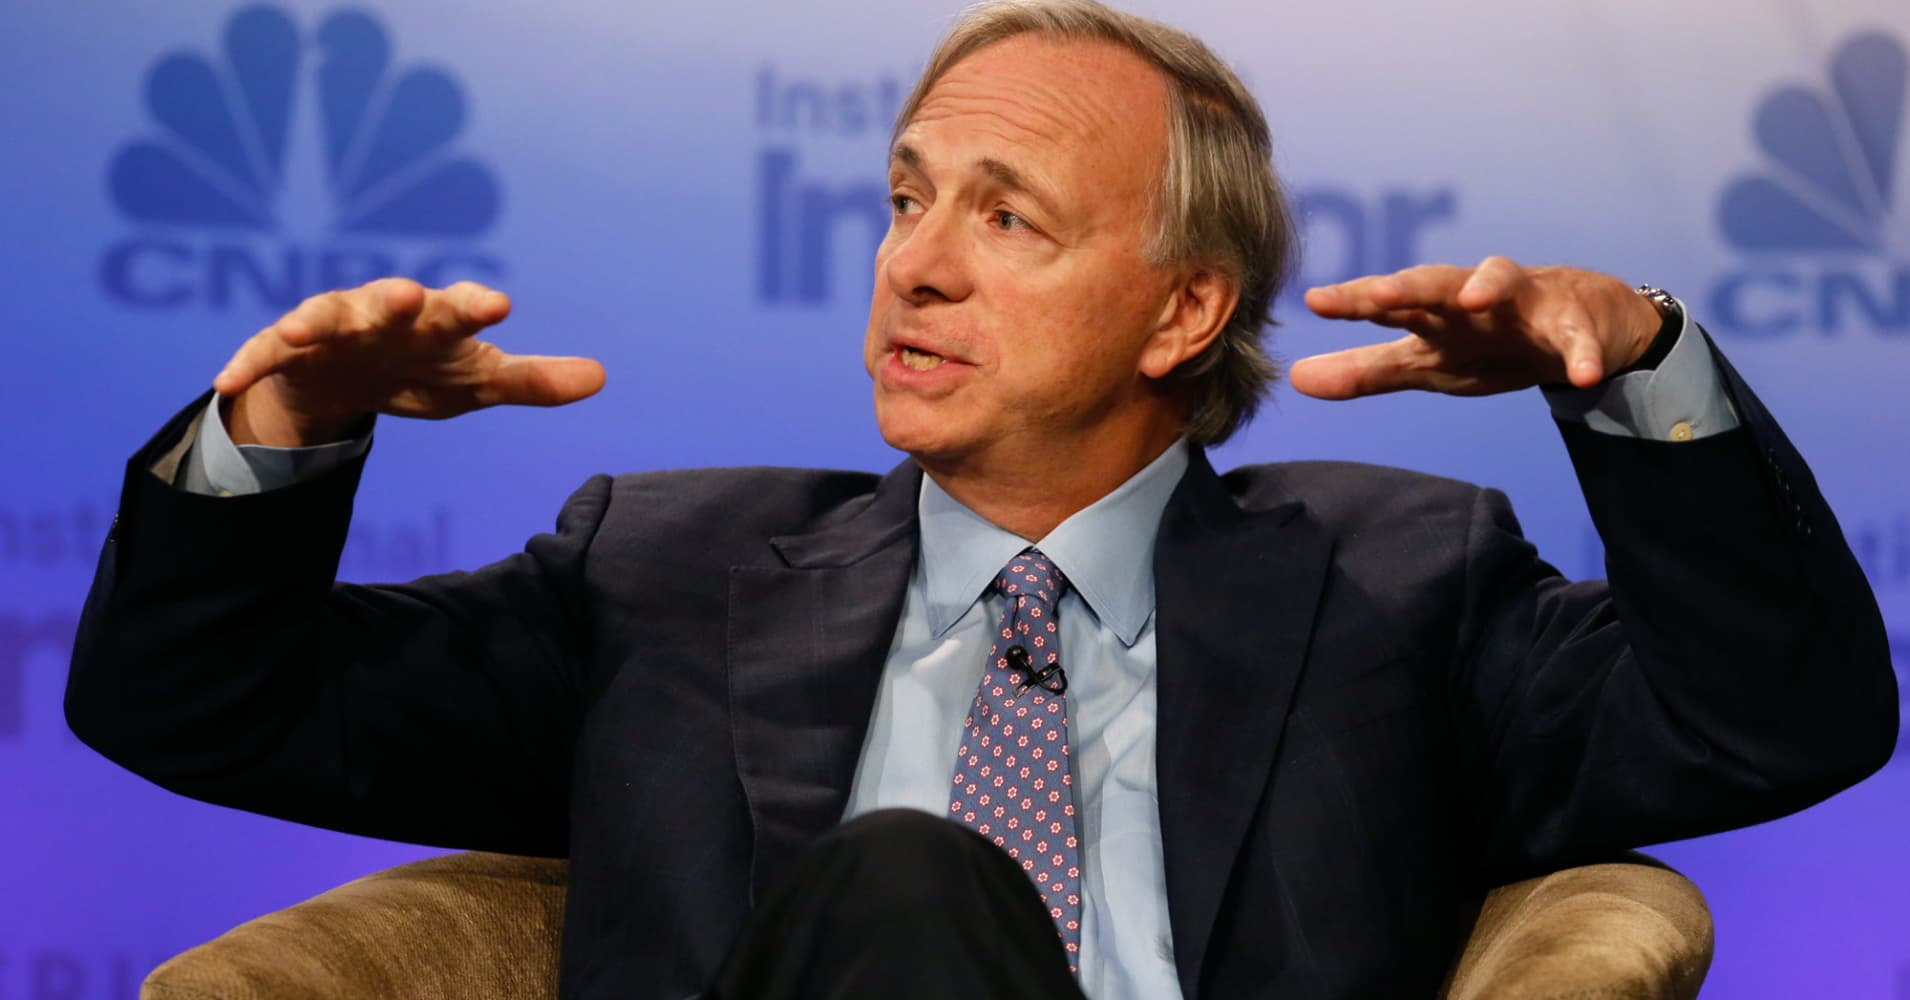 Hedge fund titan Ray Dalio says the world is counting on stocks going up and that will mean trouble in a bear market